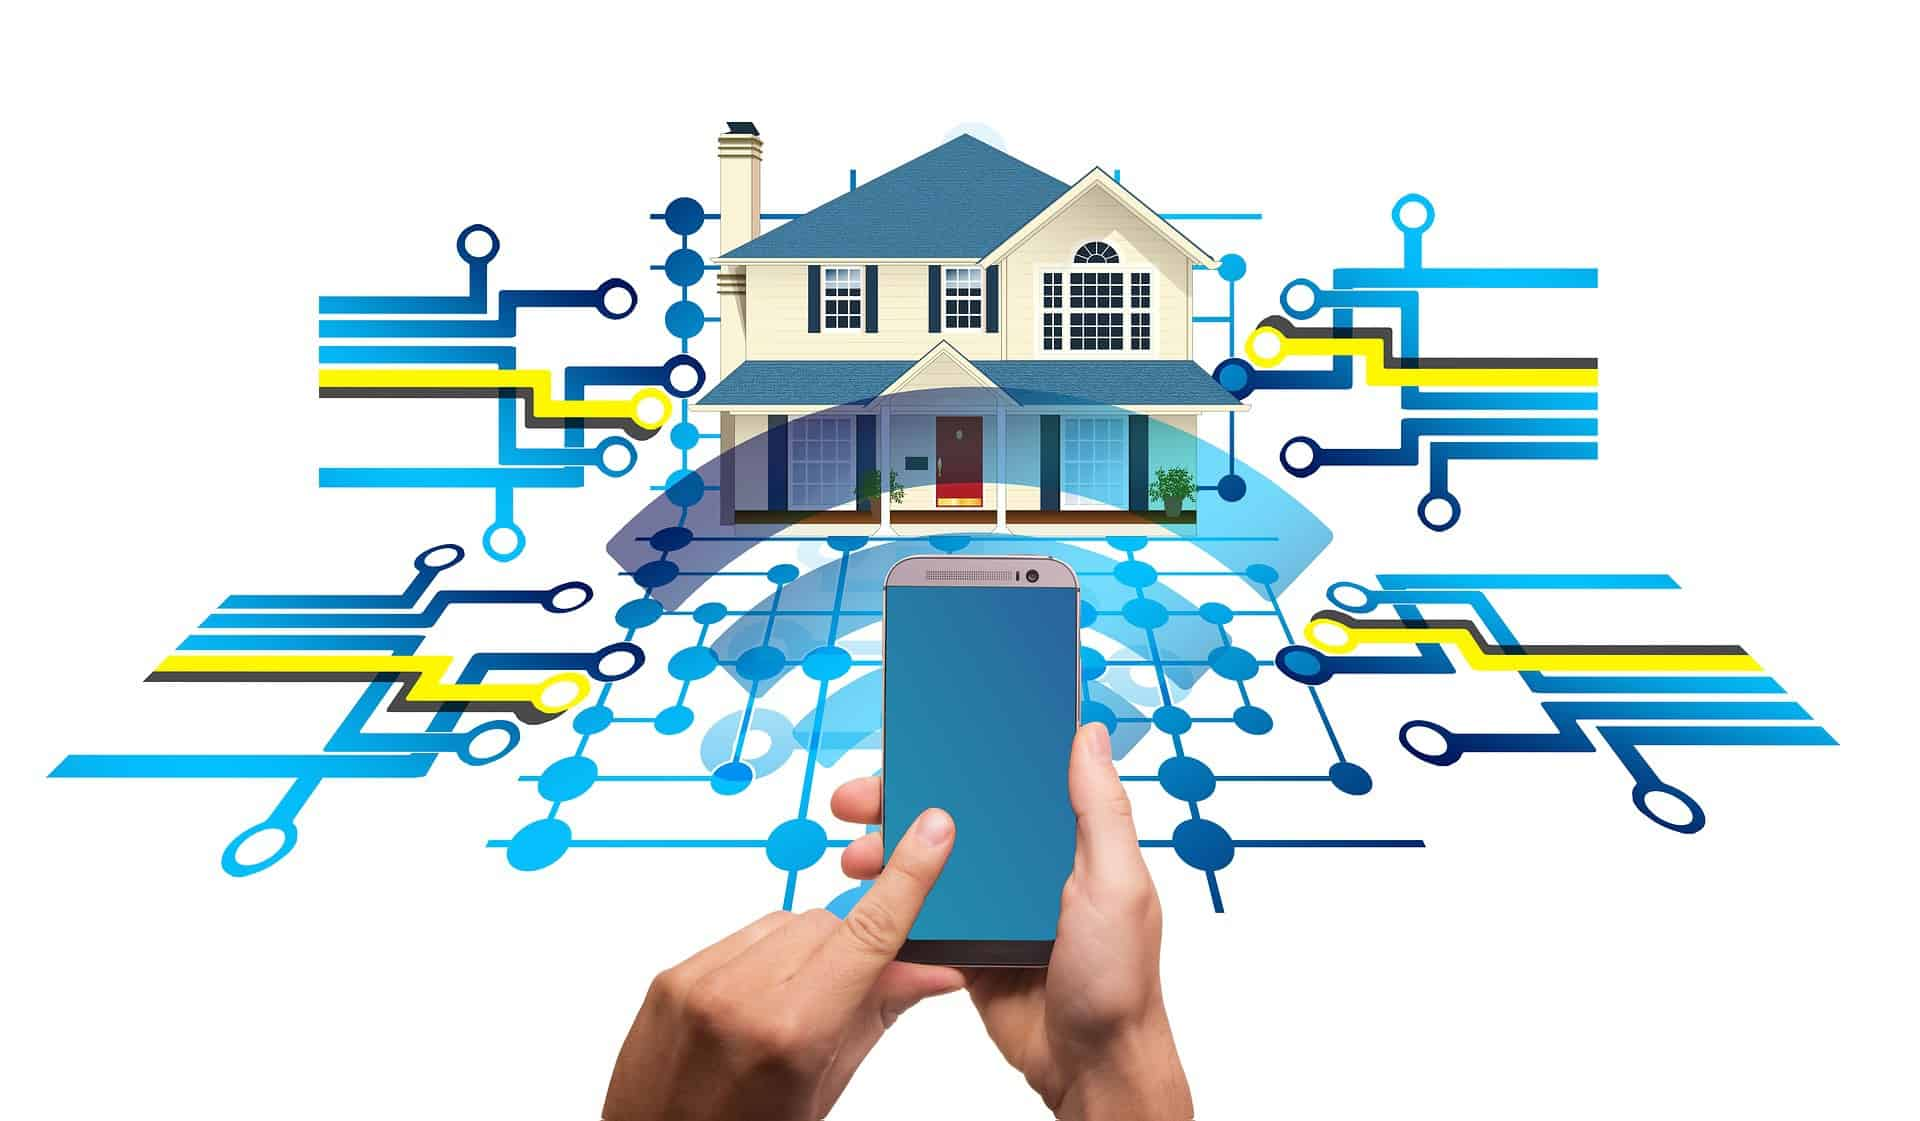 5 Tips for a Cyber Secure Home Experience